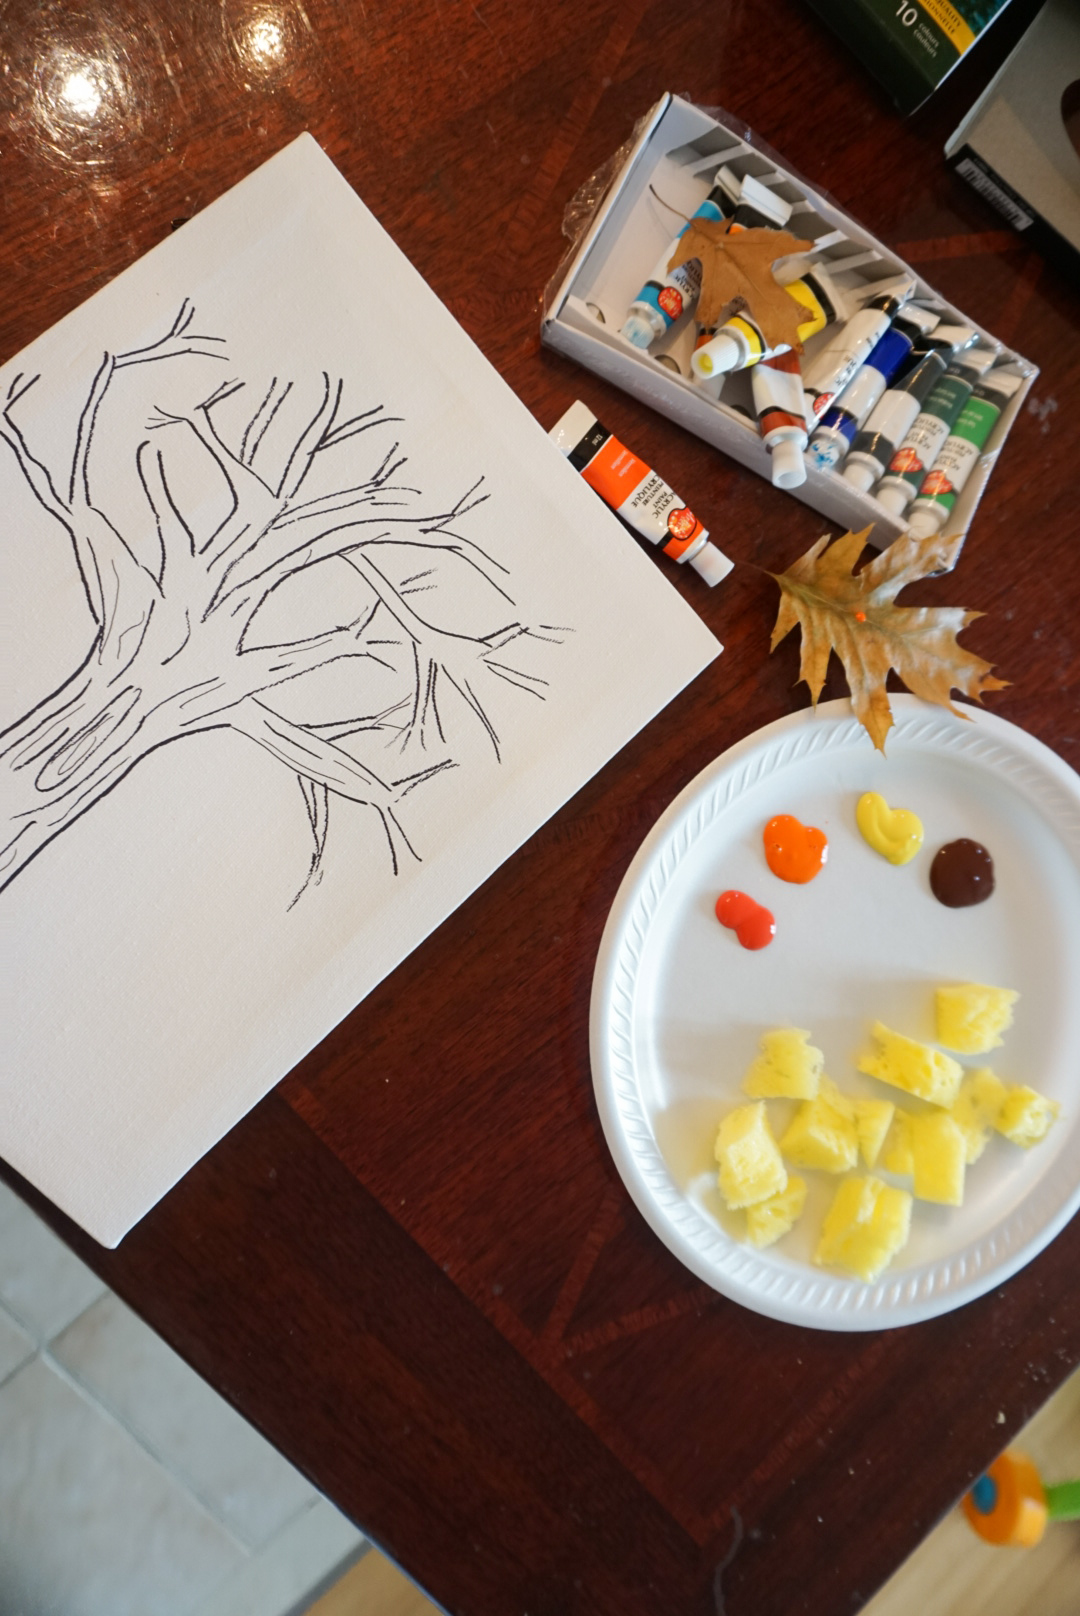 Painting supplies like paint, paint brush, paint sponges, canvas with a tree drawing.